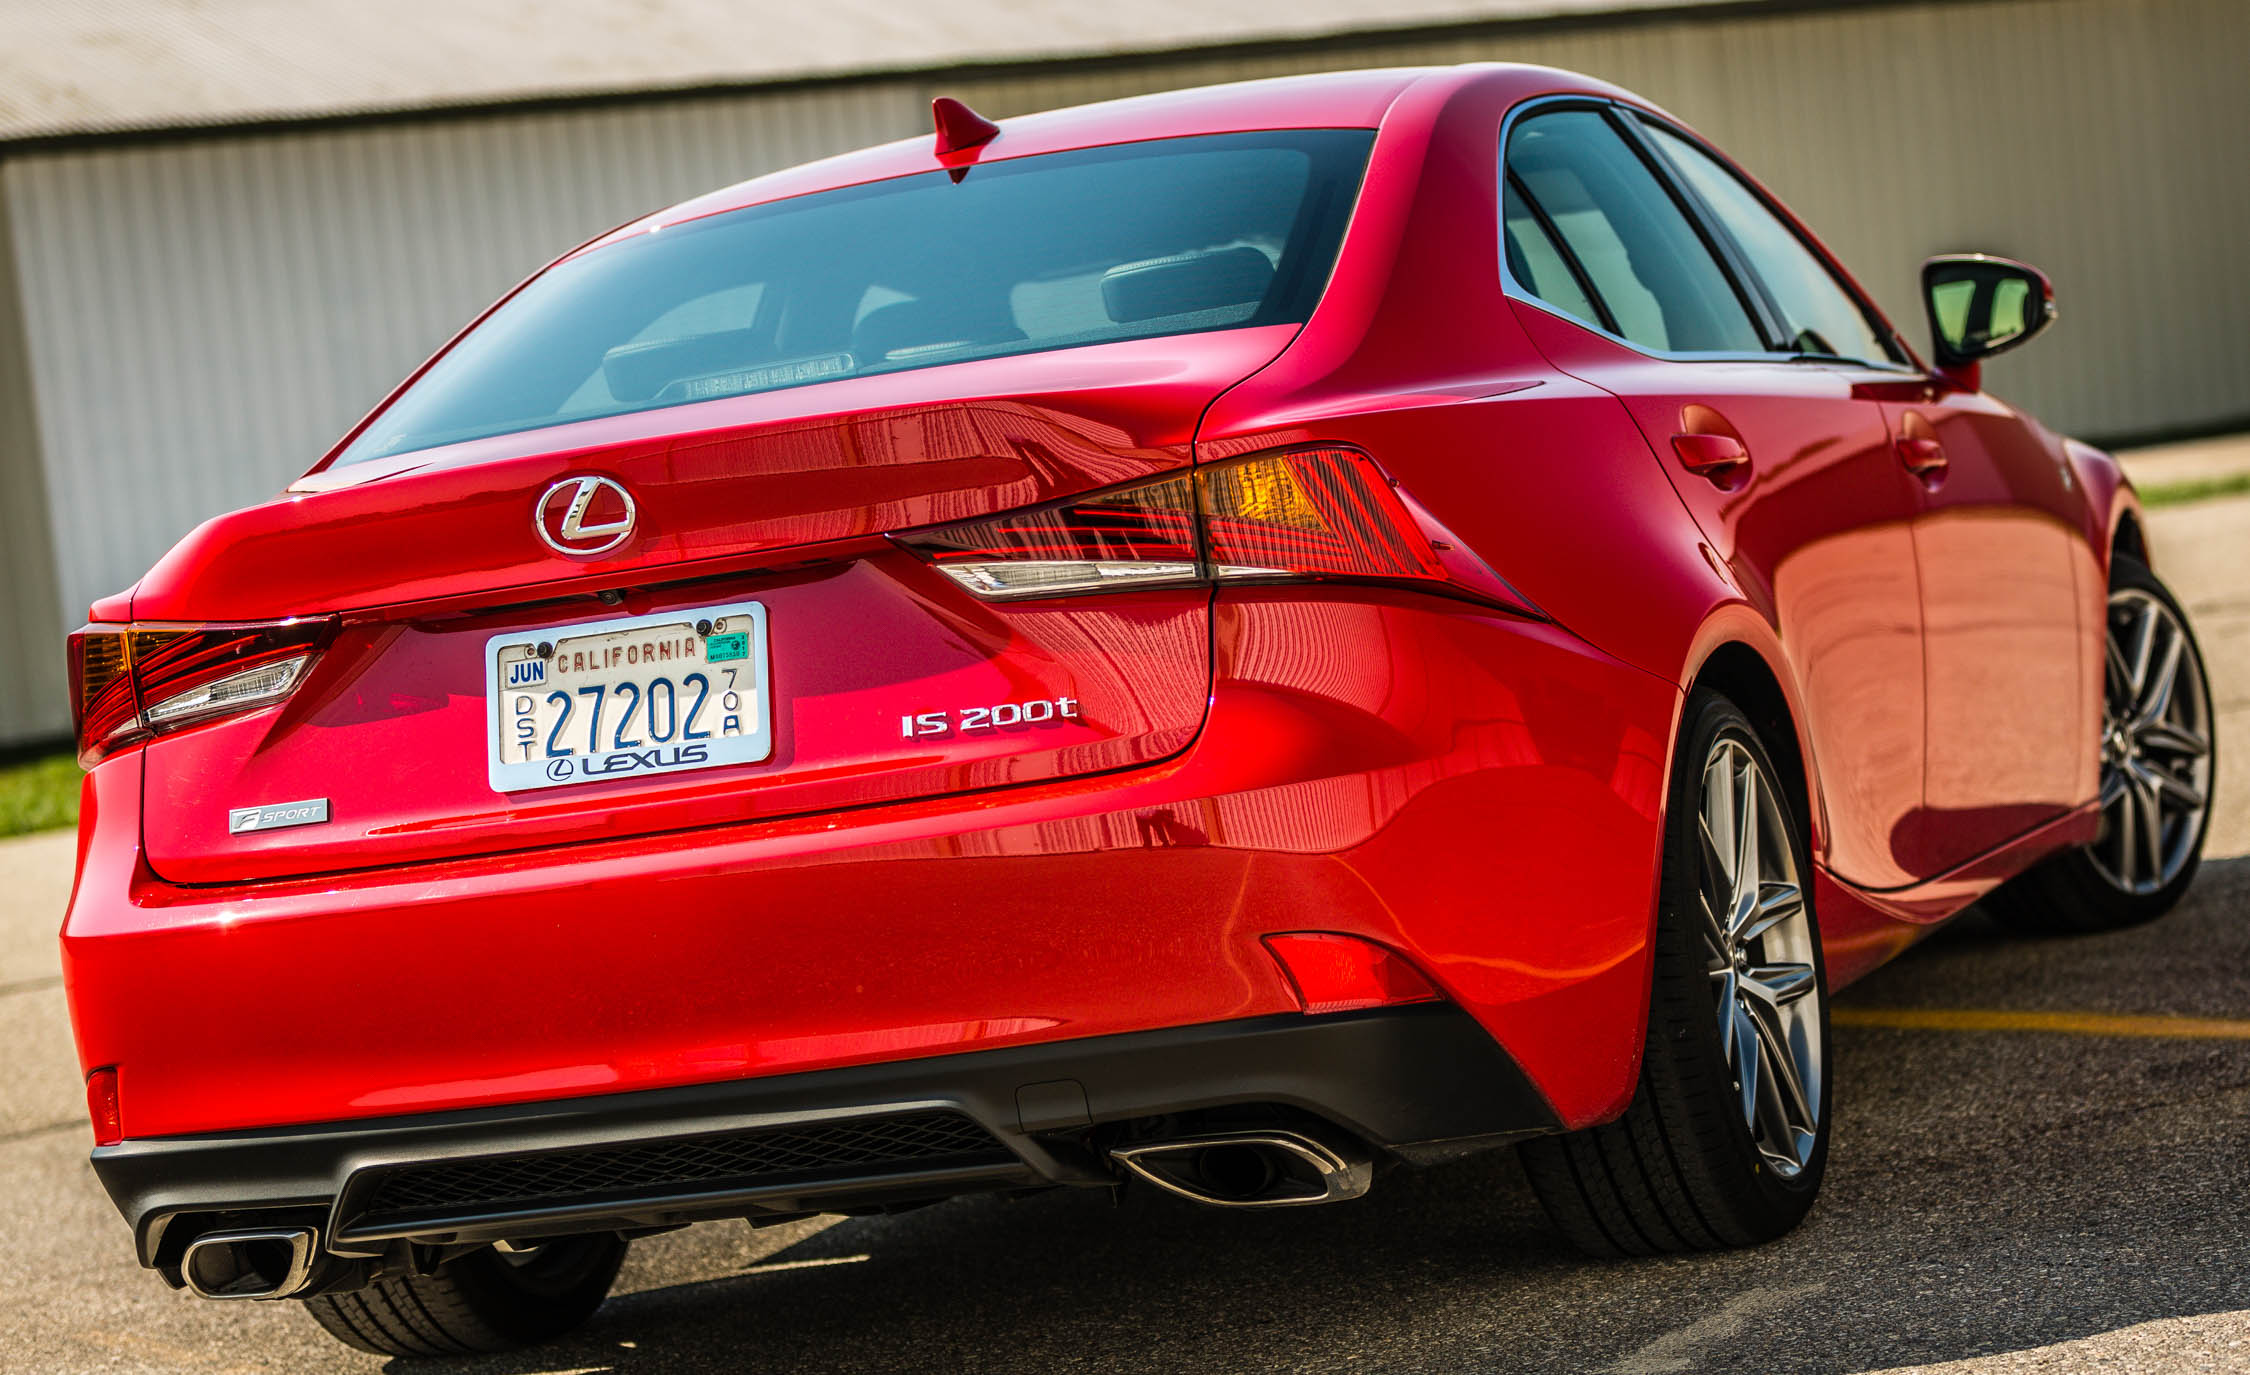 2017 Lexus IS 200t F Sport Red Exterior Rear (Photo 15 of 29)